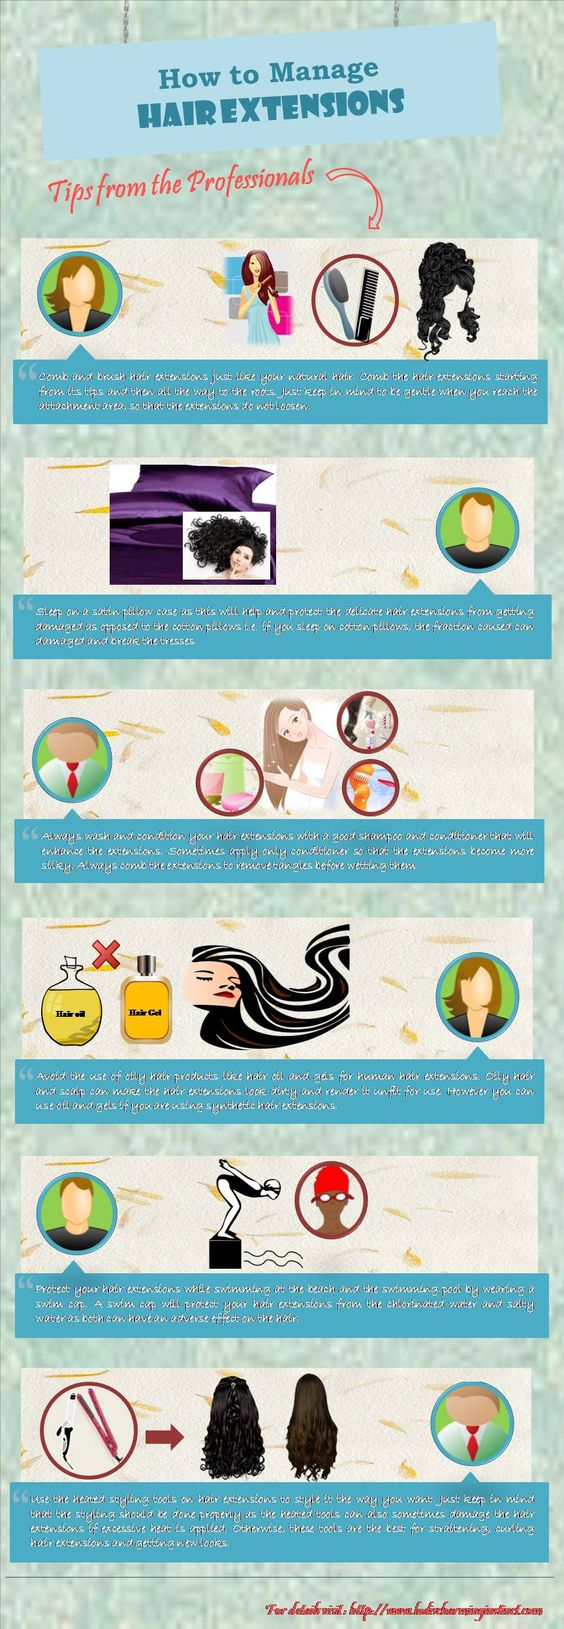 How to manage hair extensions